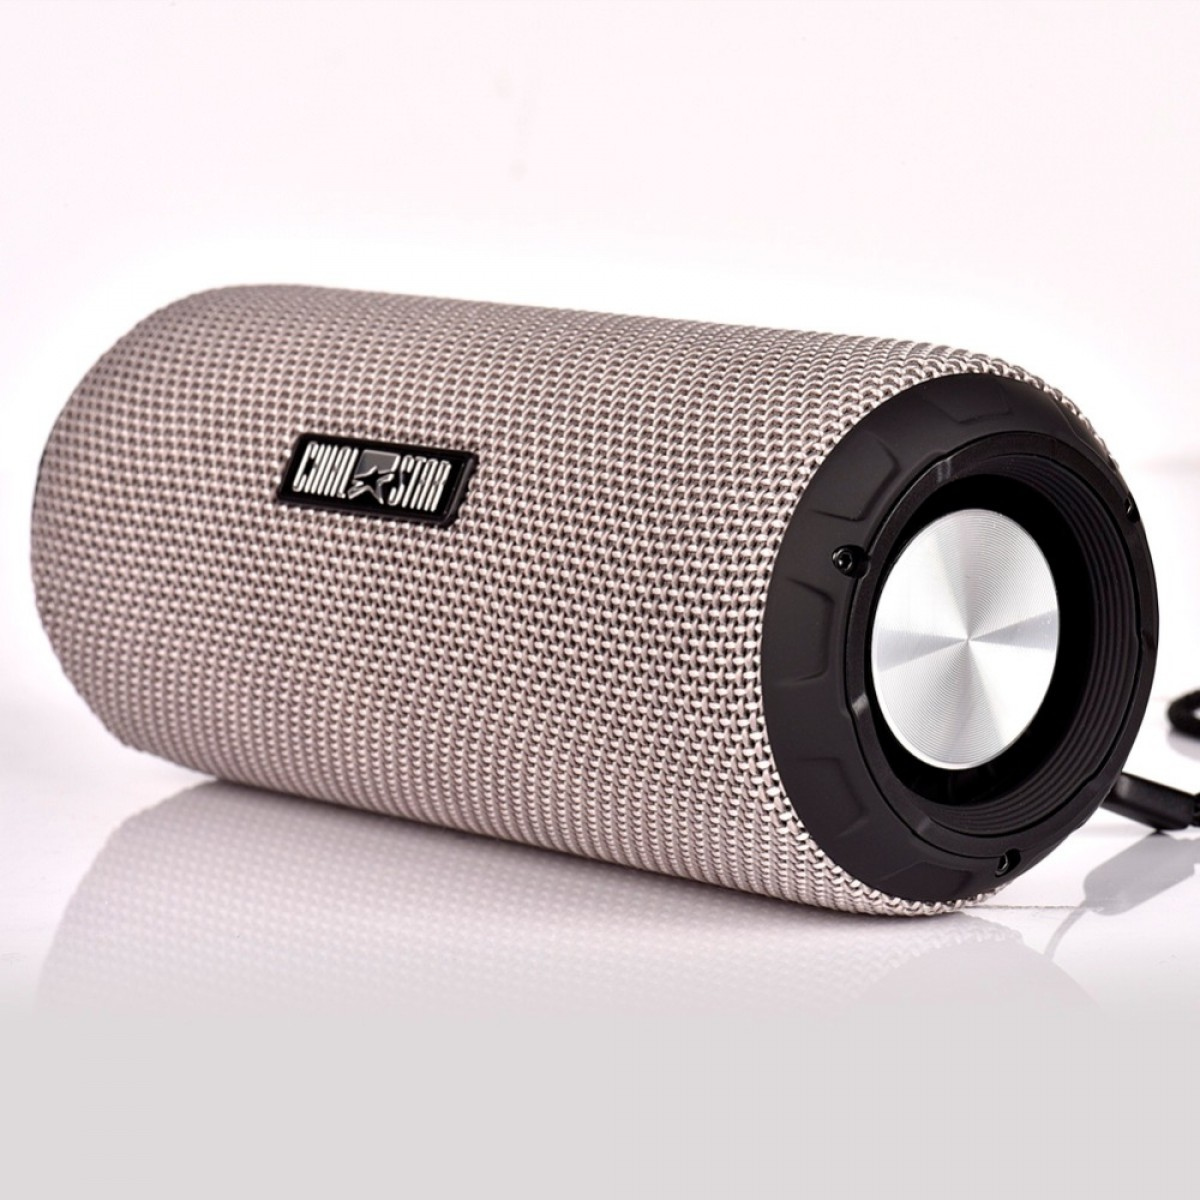 Portable Outdoor Speaker 12W Gray Fabric Covering Waterproof IPX6 Wireless  Bluetooth Speakers Music Player with Mic SD card